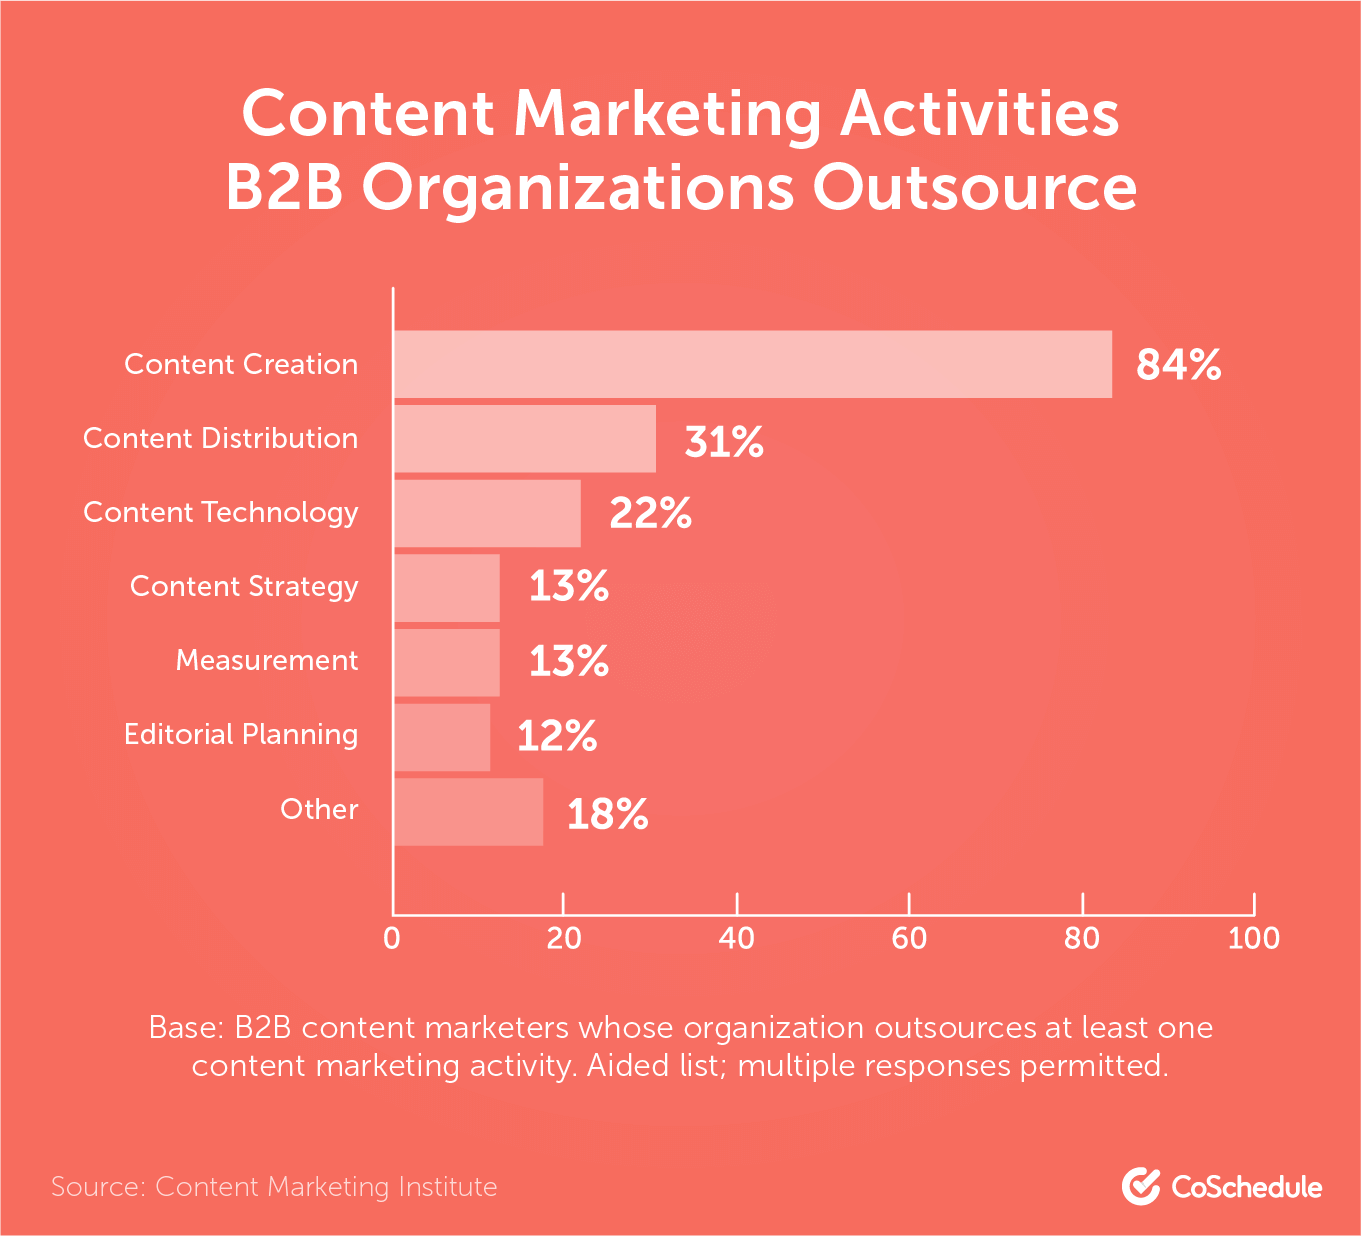 Content marketing activities